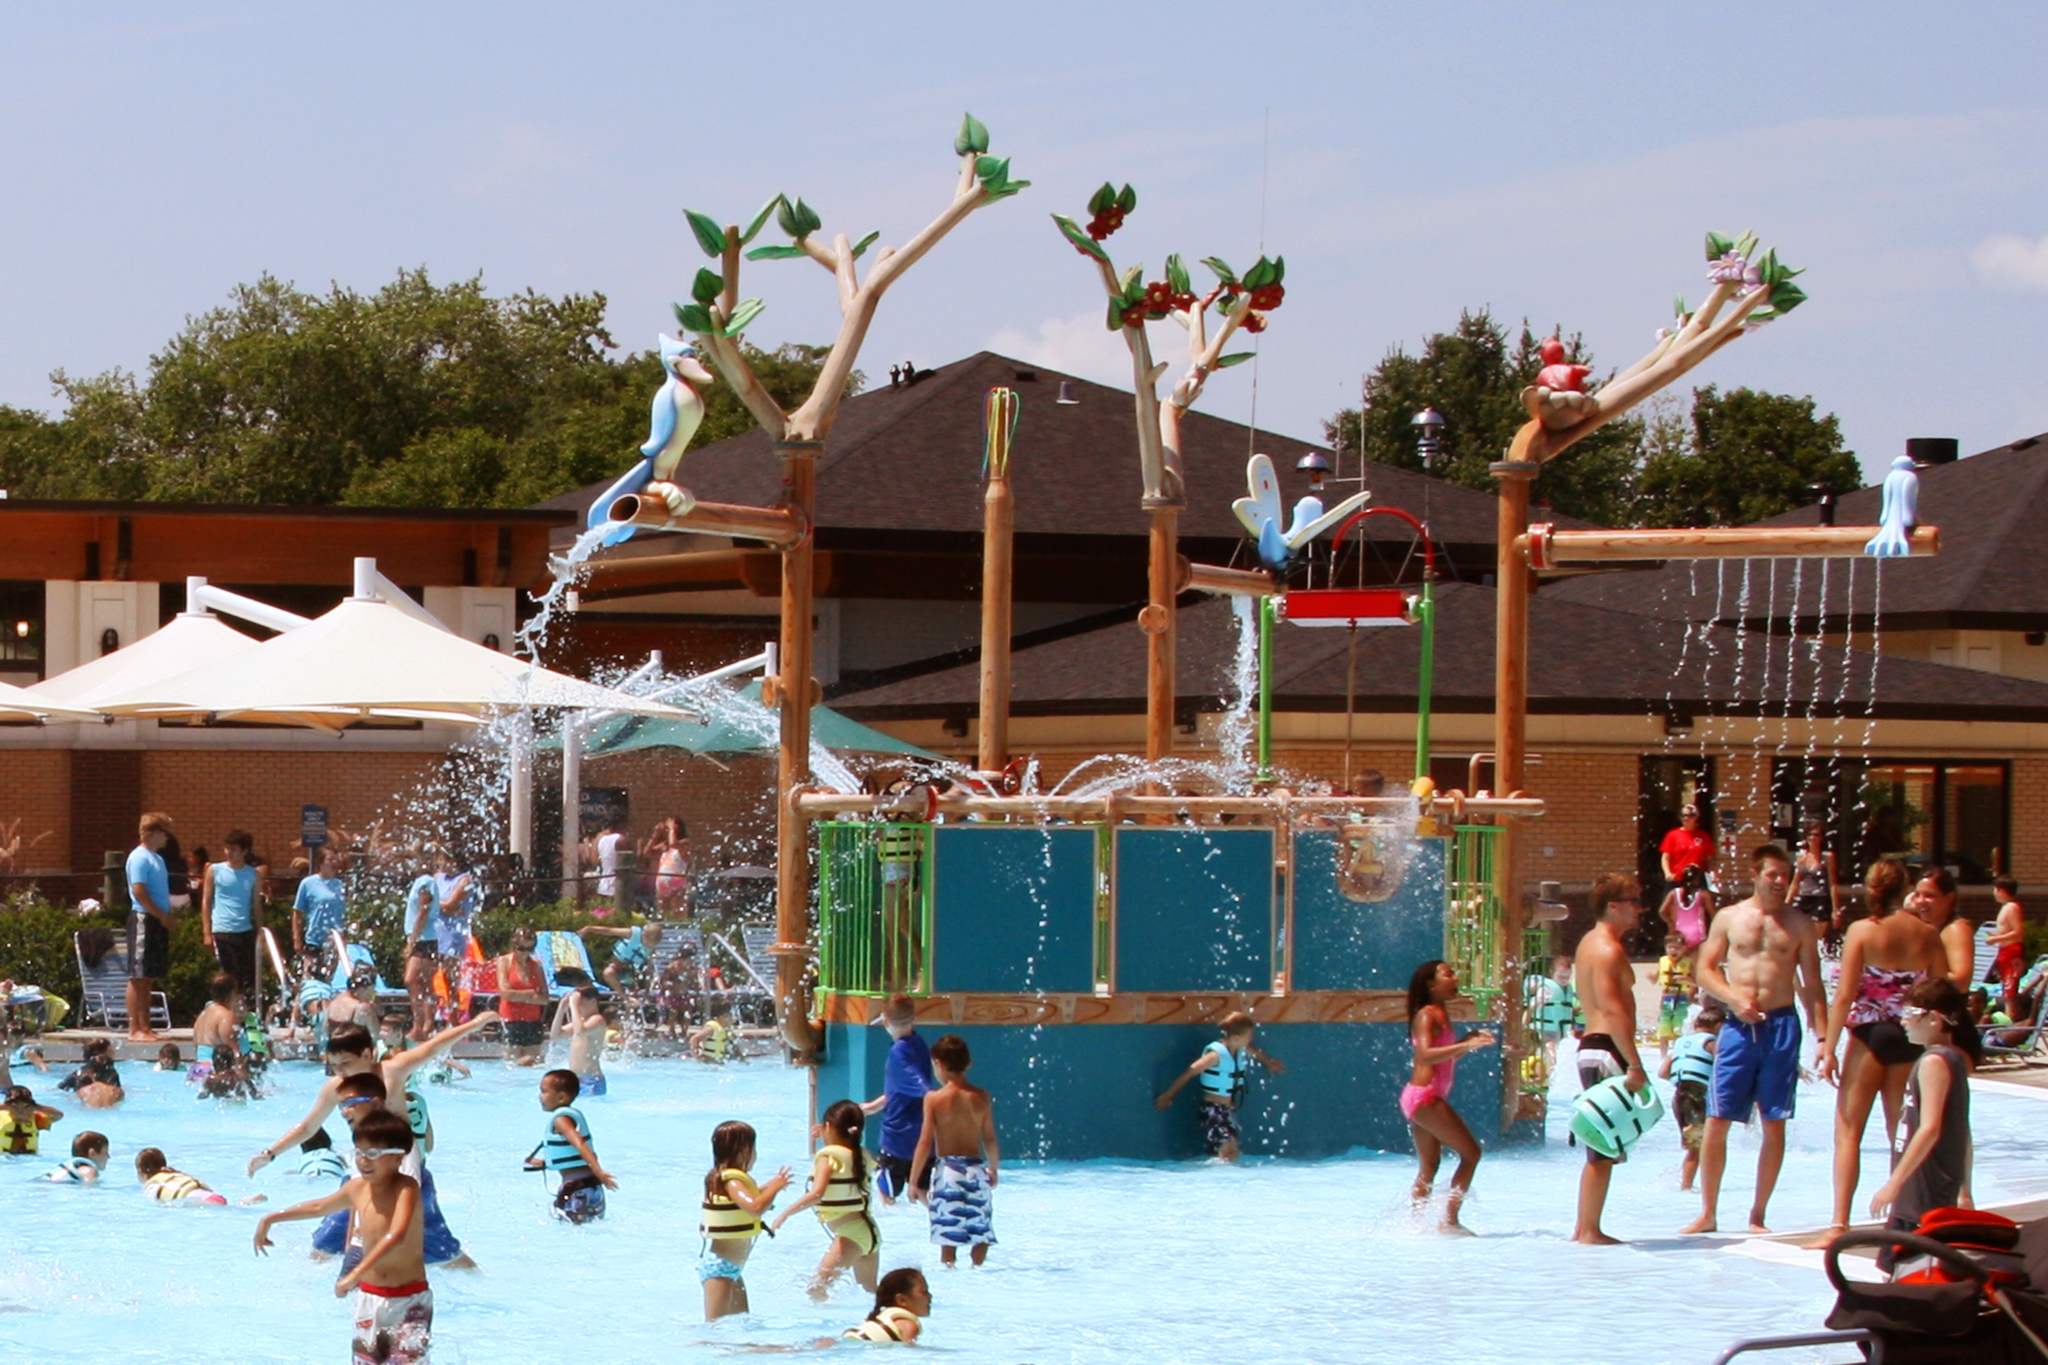 Flick Outdoor Aquatic Center